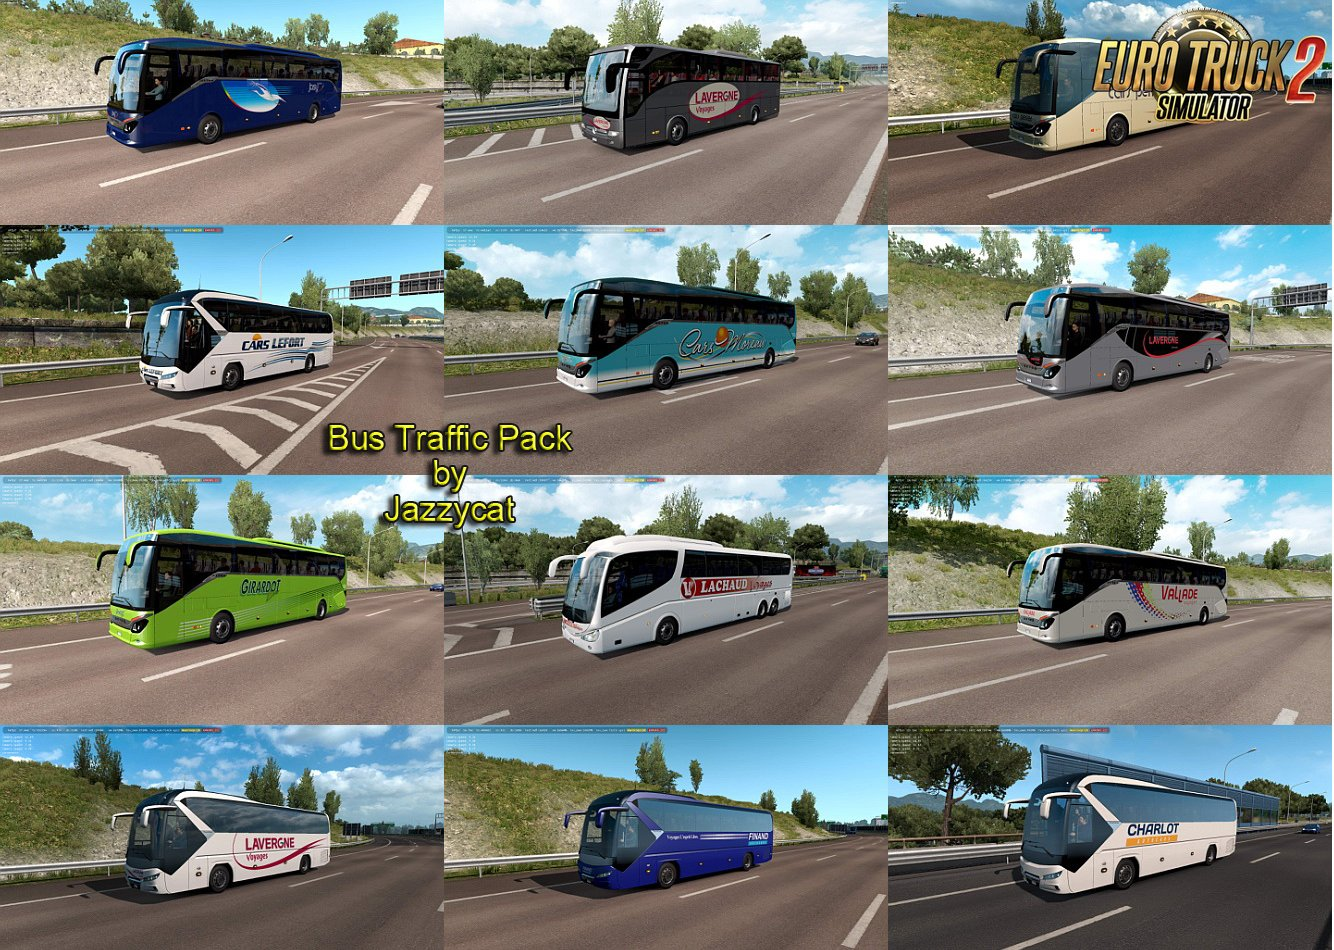 Bus Traffic Pack v6.0 by Jazzycat